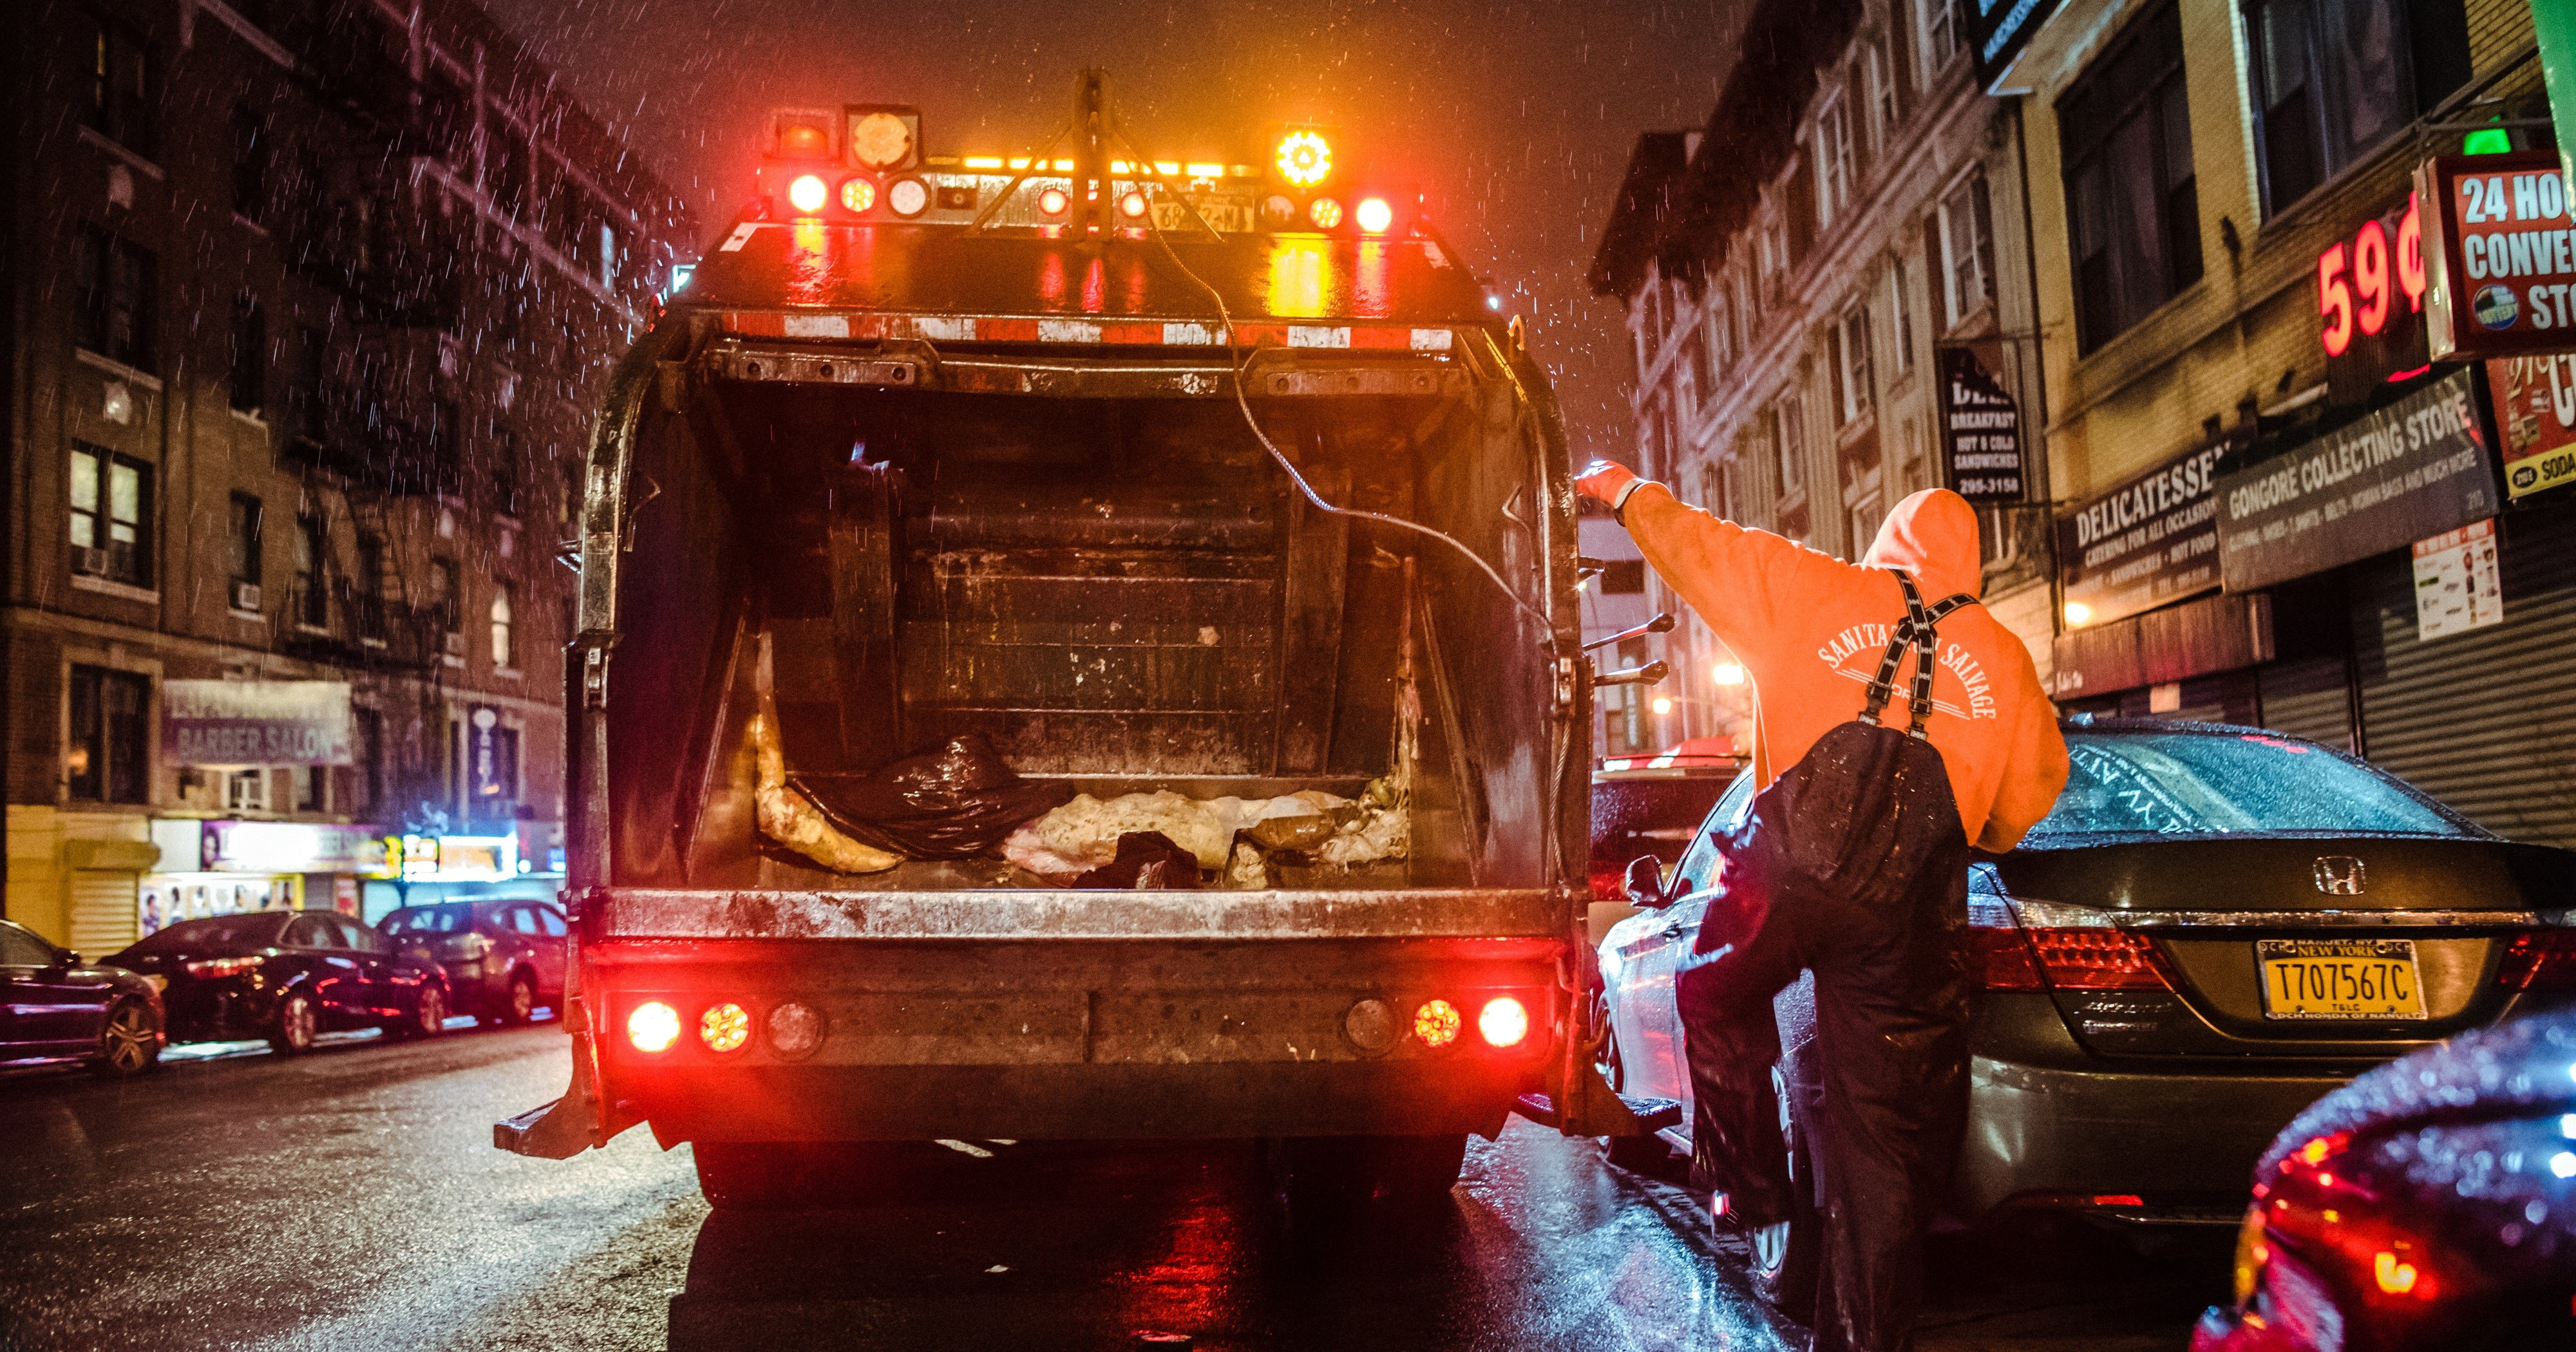 Hell on Wheels: The Rogue World of One of New York's Major Trash Haulers